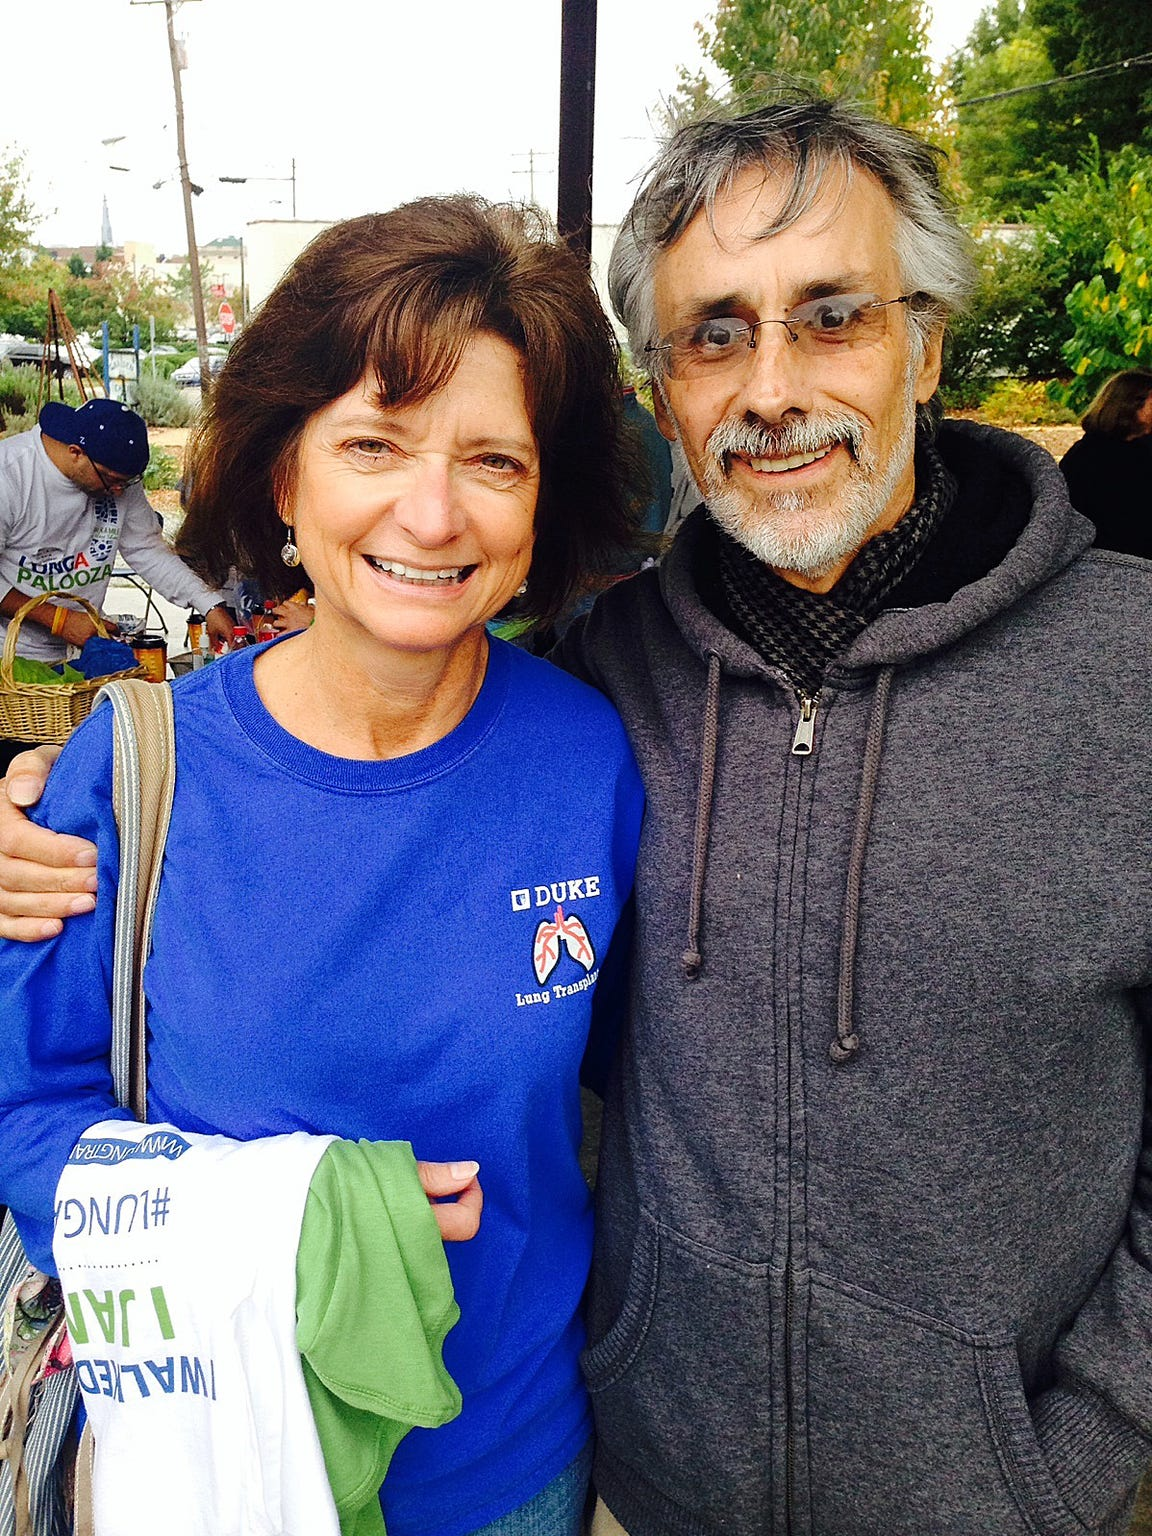 Rudy Caduff, here with hospital lung transplant administrator Cindy Lawrence one week after his transplant, where he walked a mile that day